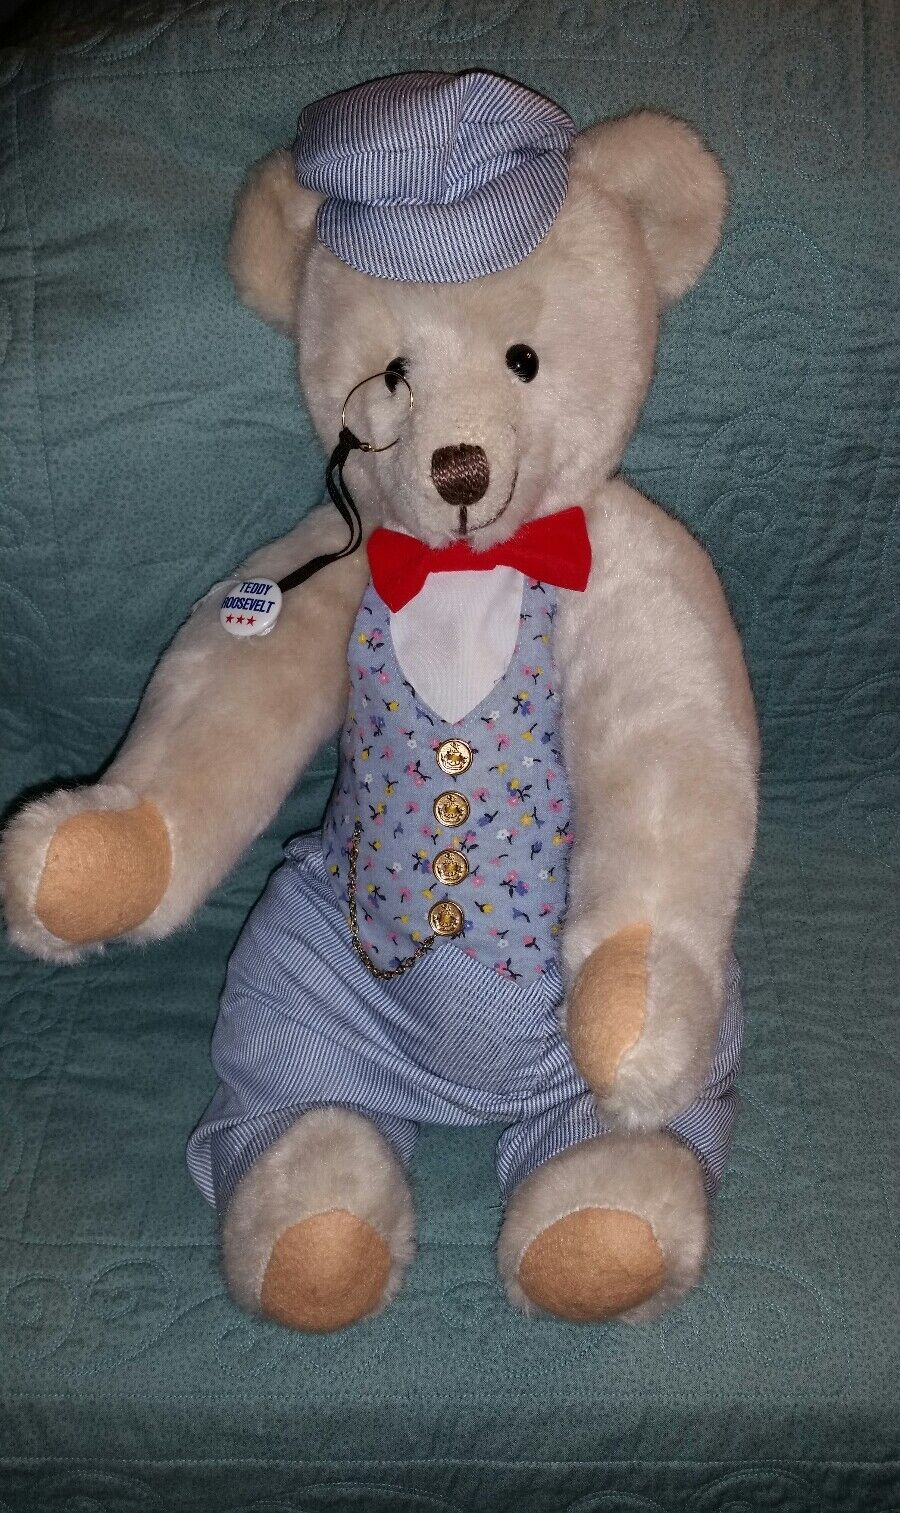 Rear Vintage Roosevelt Teddy Productions B By D&D Productions Teddy And Deans Of Britain.(gt3) d6a0b5